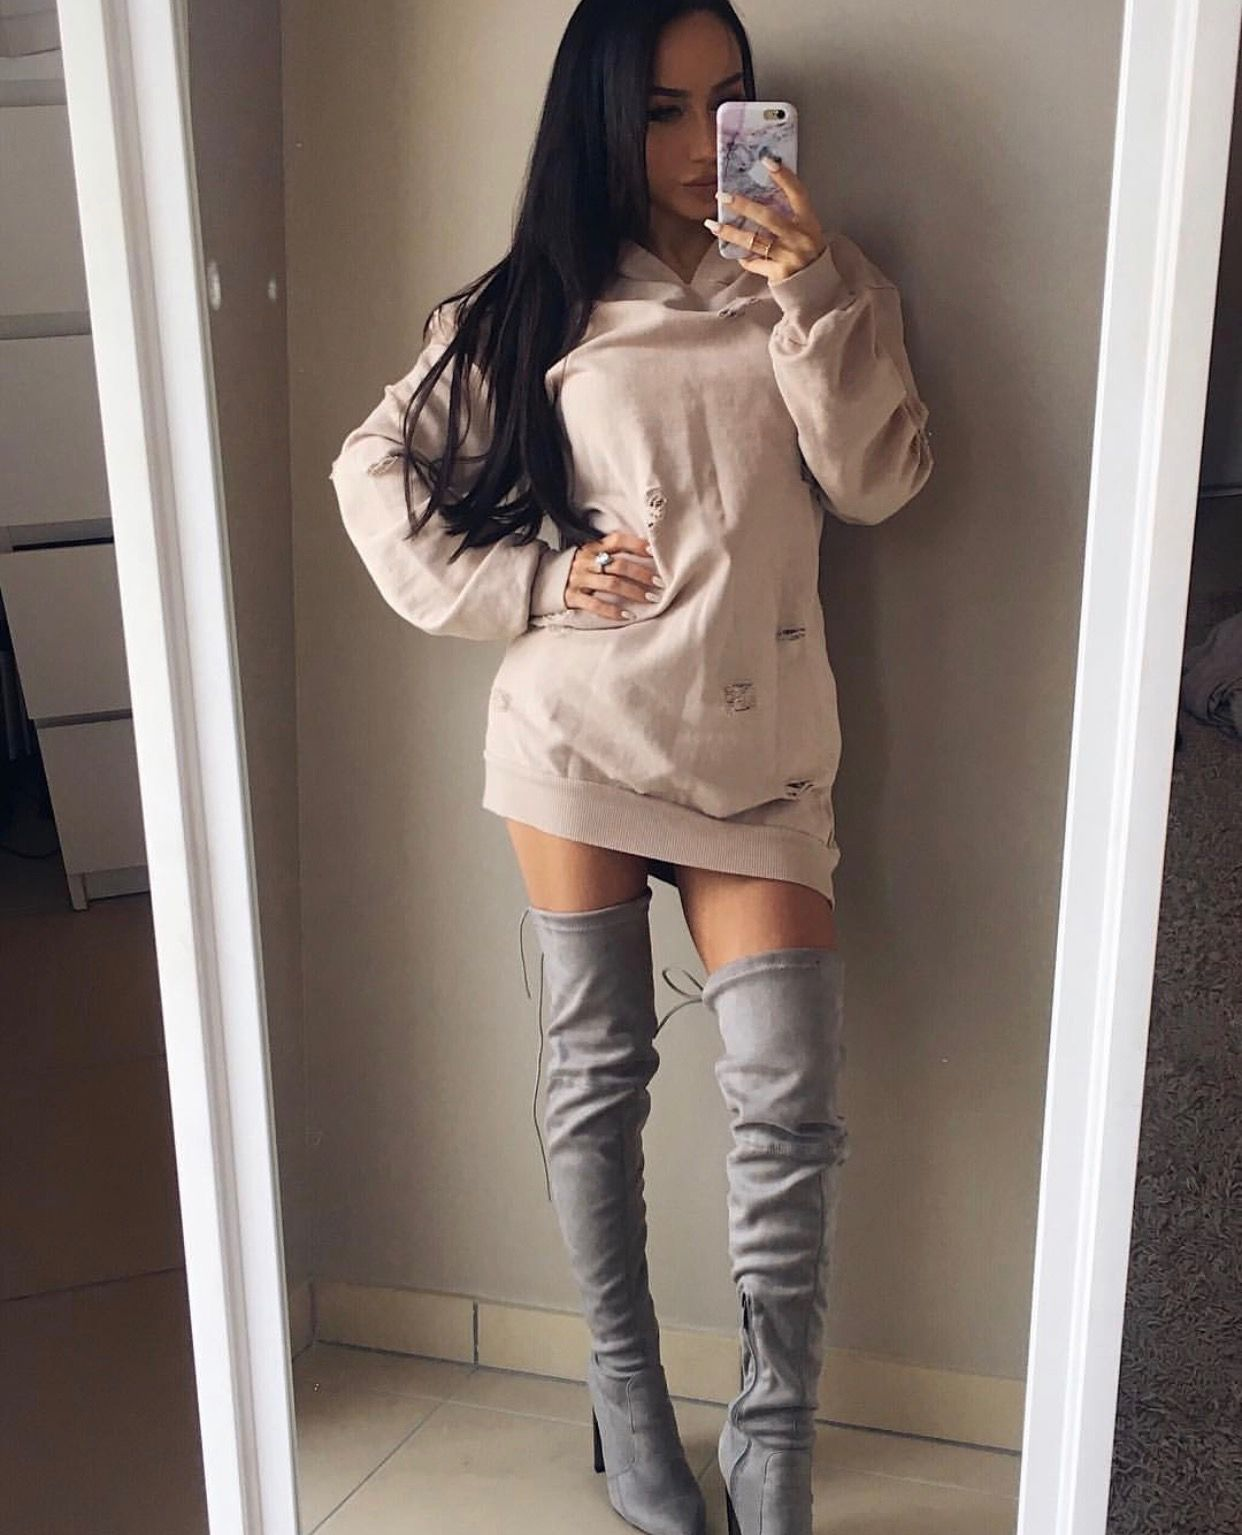 2300368b1683 Coco Lili. Gray thigh high boots. Hoodie dress. Nude colored sweater dress.  Long brunette hair.